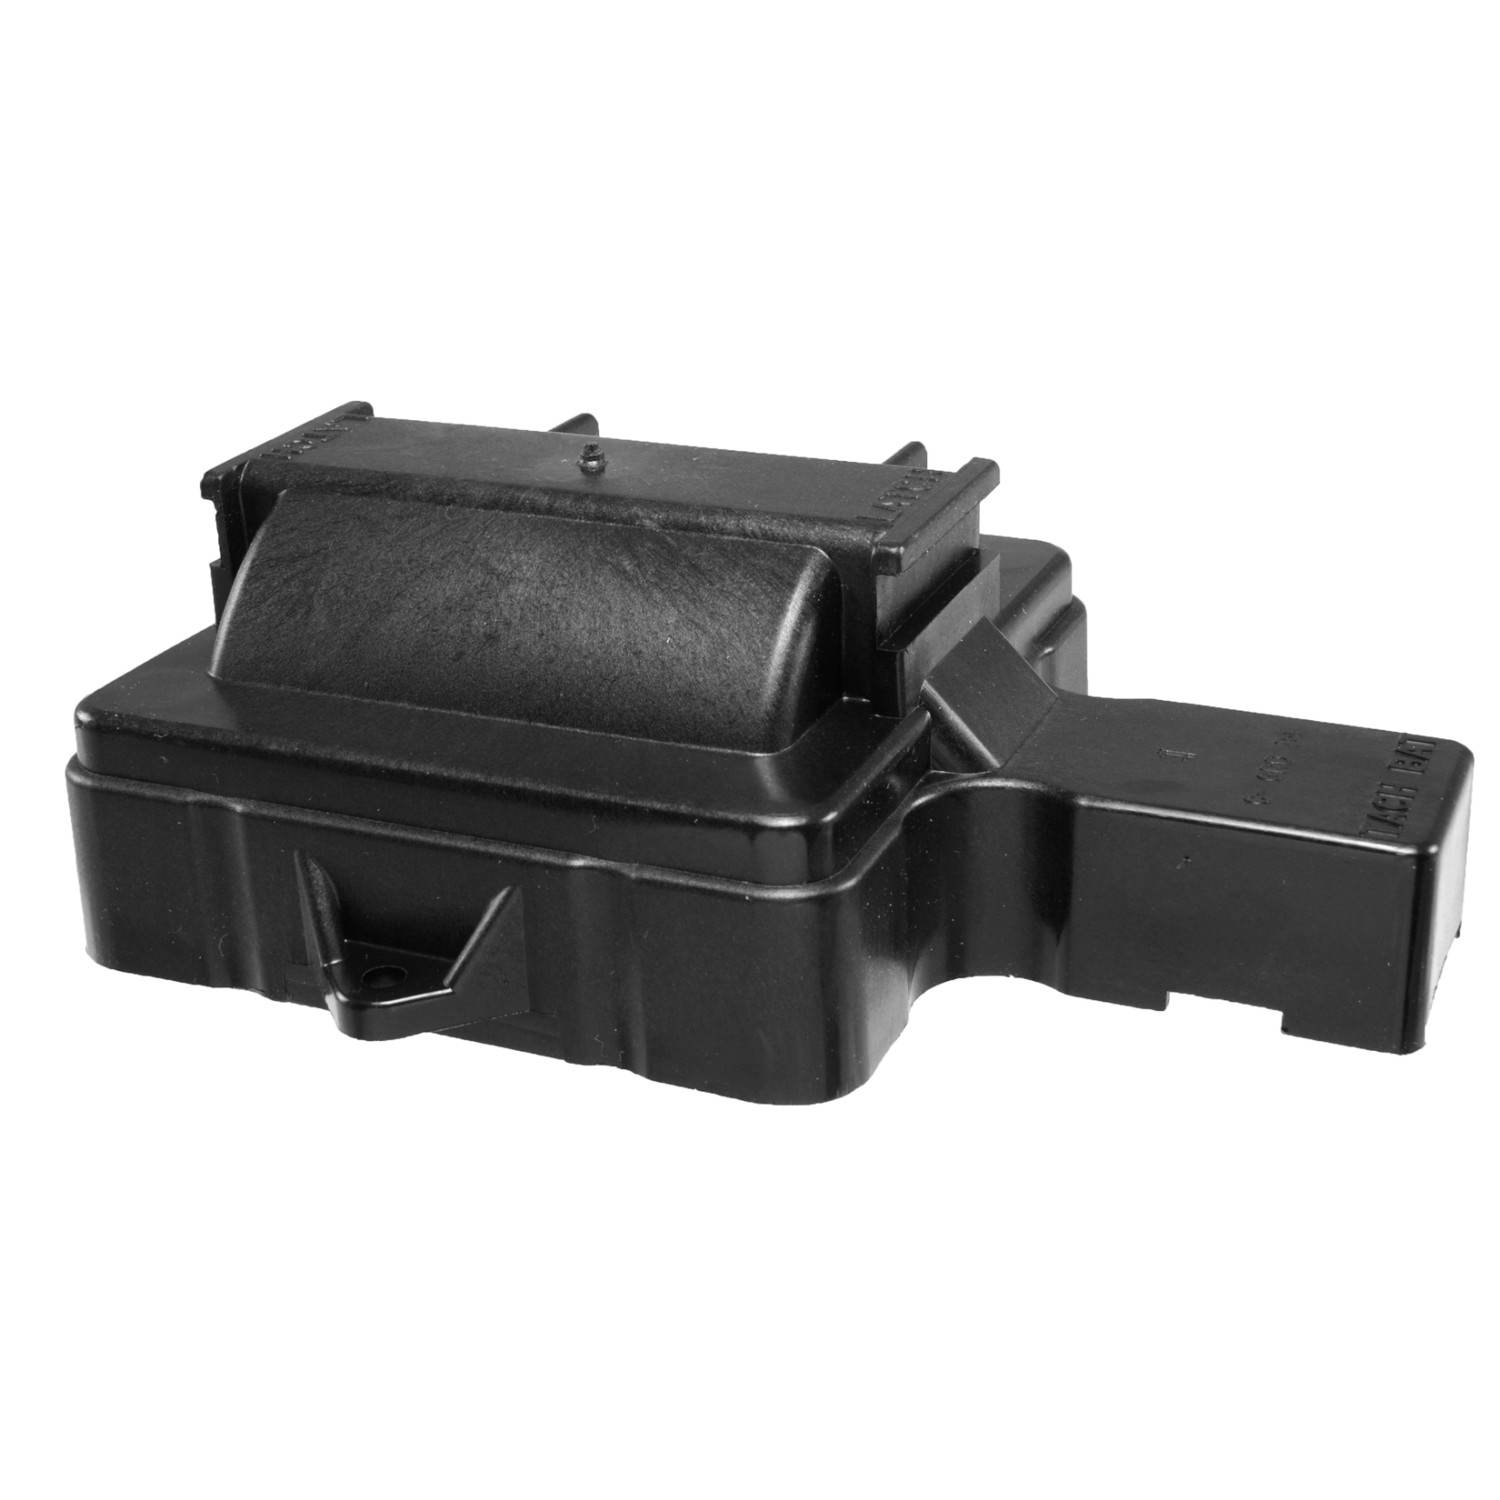 ACDELCO GOLD/PROFESSIONAL - Distributor Cap Cover - DCC 1875960X